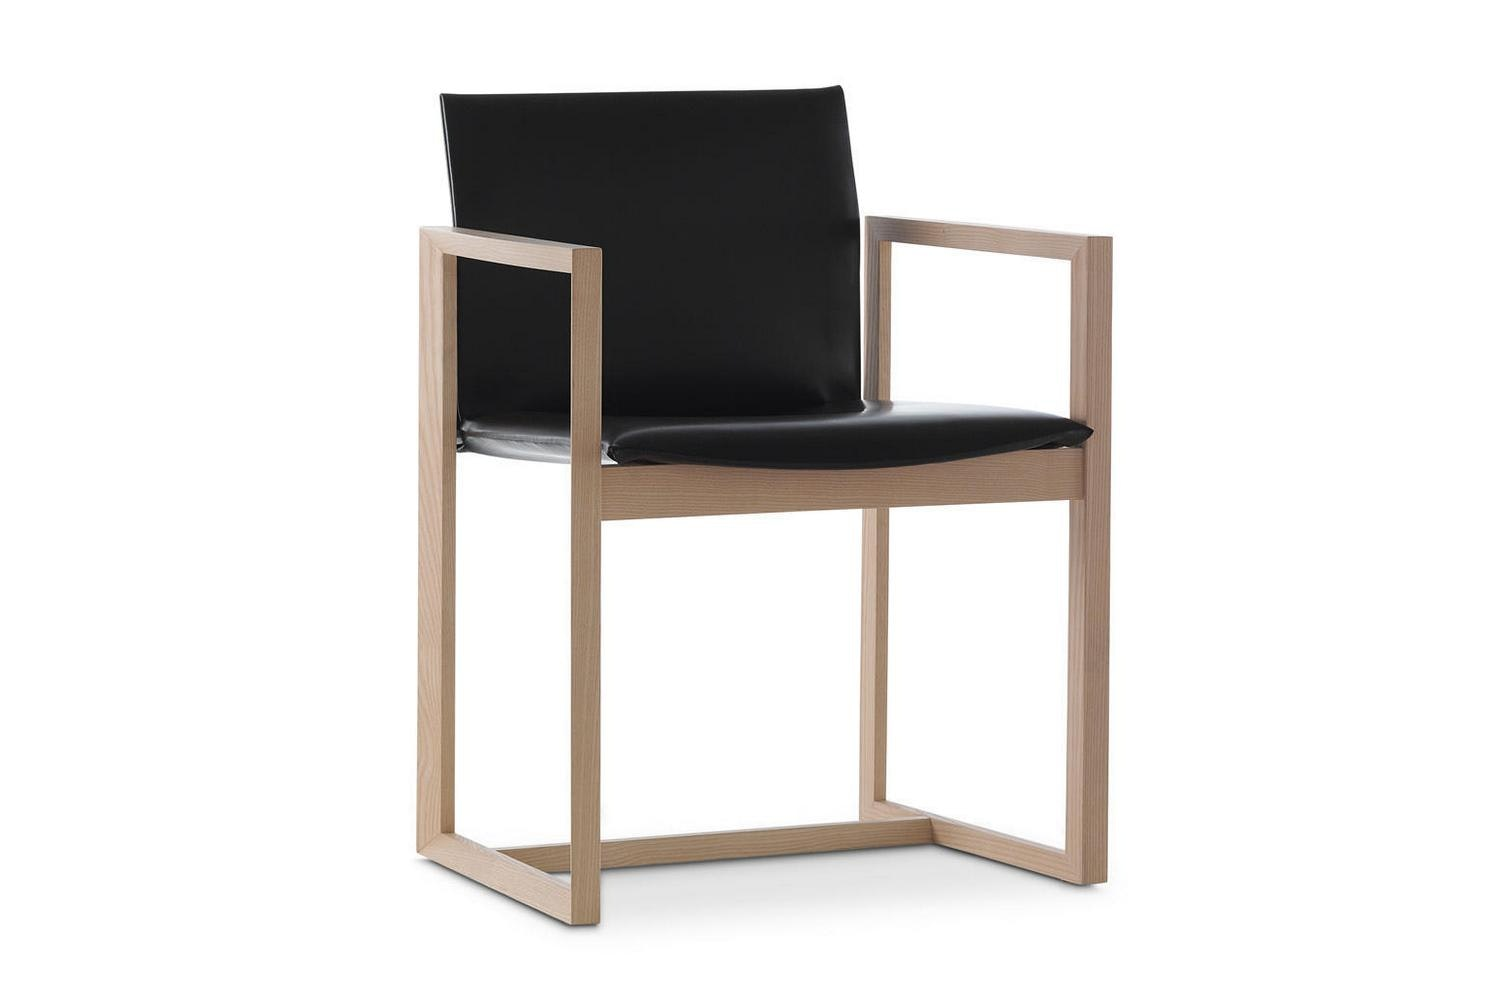 184 Eve Chair by Piero Lissoni for Cassina